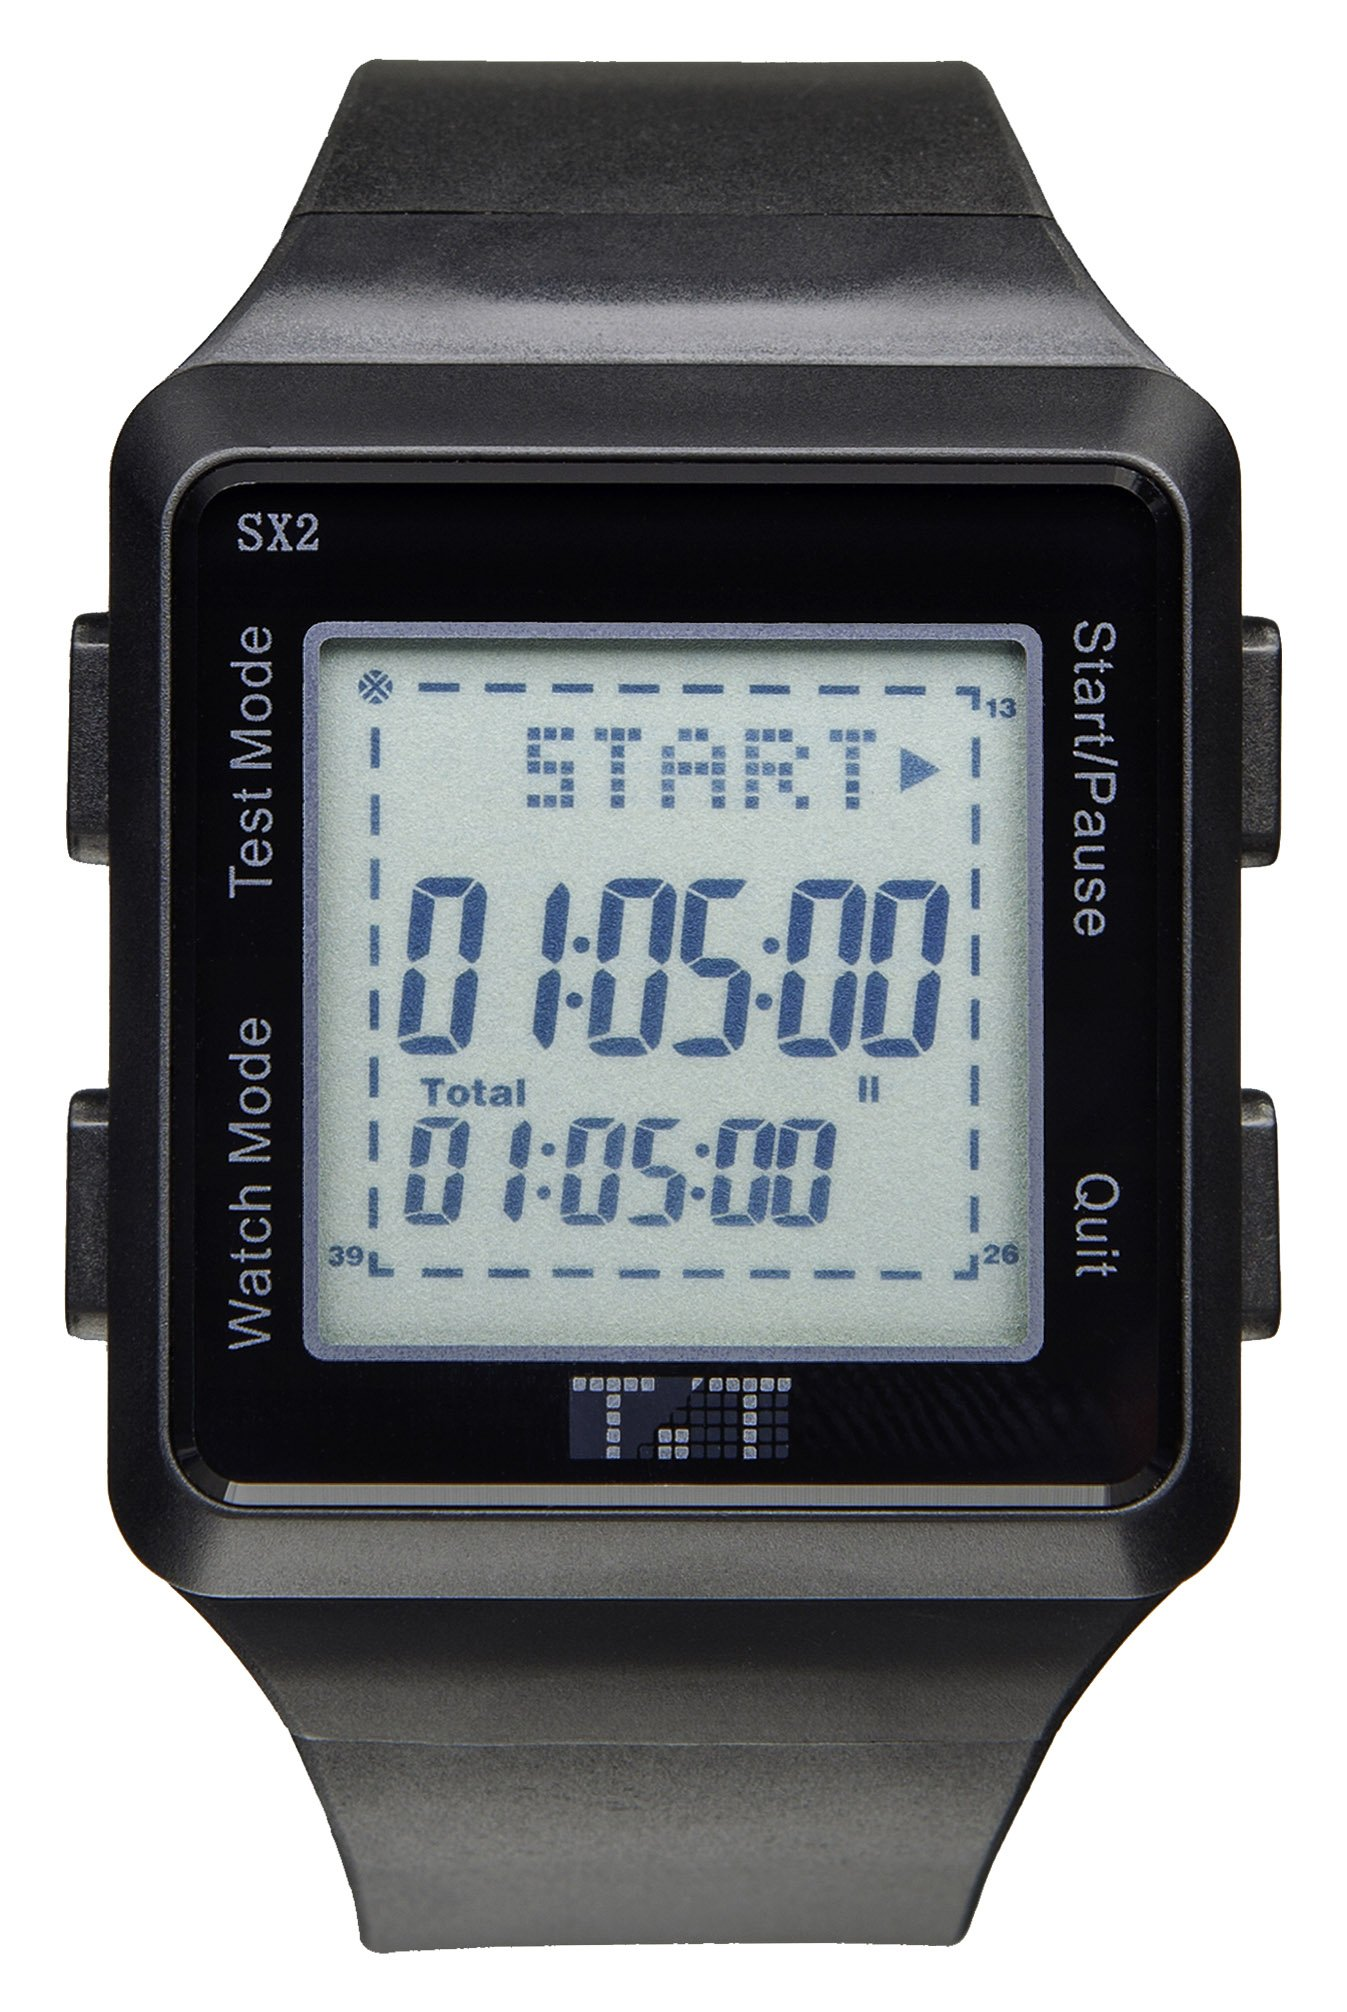 Testing Timers TT-SII Testing Timers TT-SII SAT G2 Pacing Digital Timer and Watch, 2nd Generation, 0.5'' Height, 1.75'' Width, Black by Testing Timers